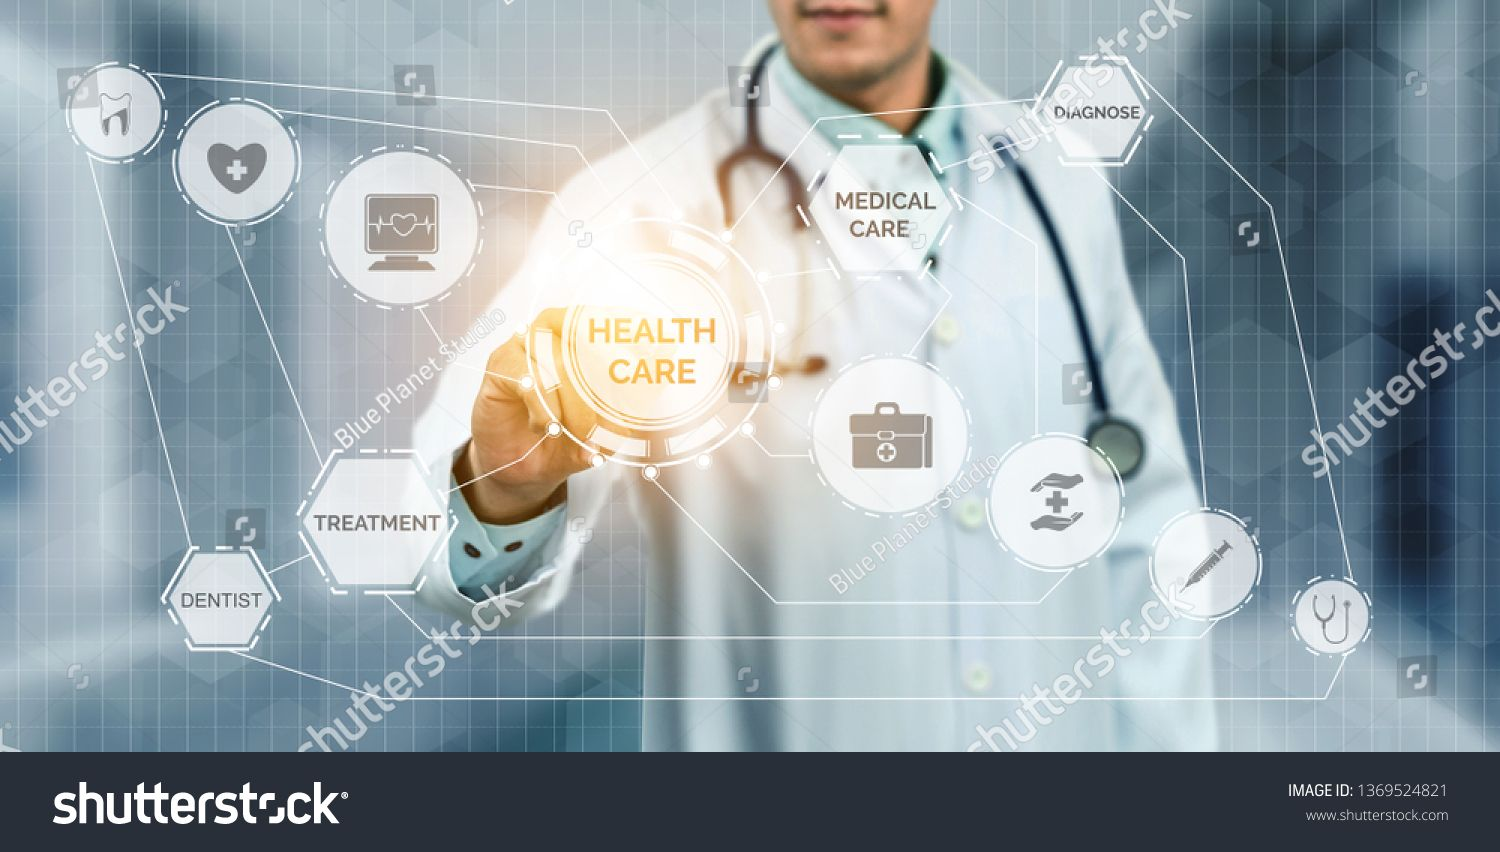 Medical Healthcare Concept Doctor In Hospital With Digital Medical Icons Graphic Banner Showing Symbol Of Medicine Medical Medical Health Care Medical Icon